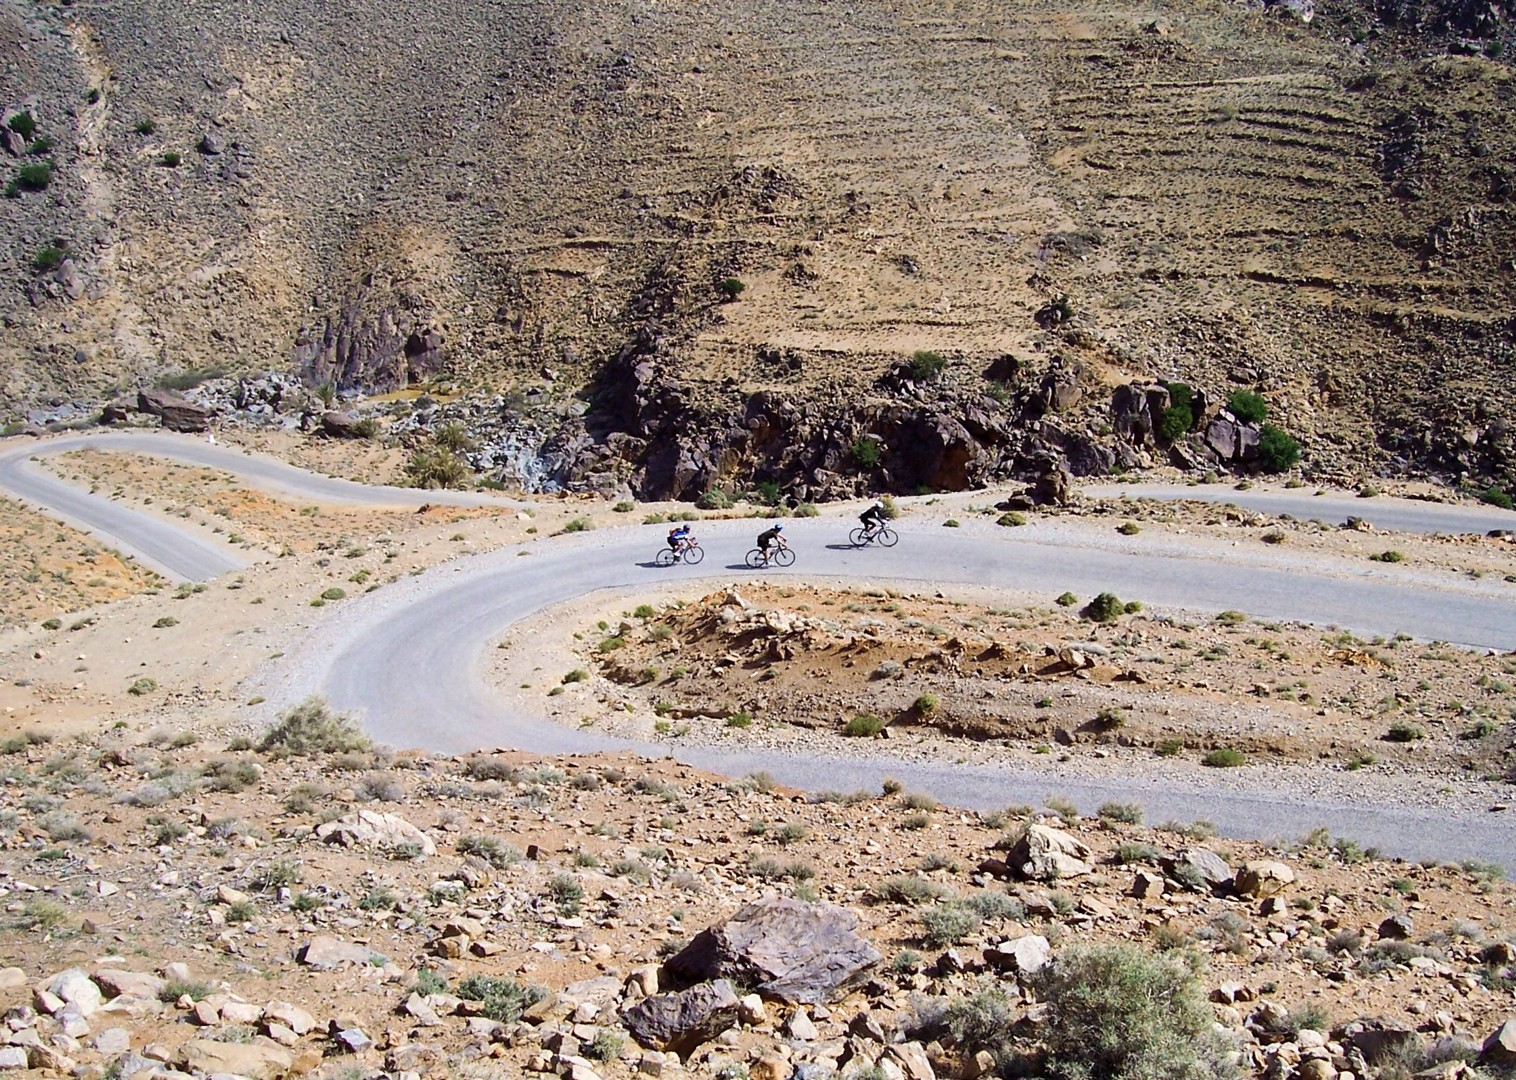 morocco-guided-road-cycling-holiday-road-atlas-immouzer.jpg - Morocco - Road Atlas - Road Cycling